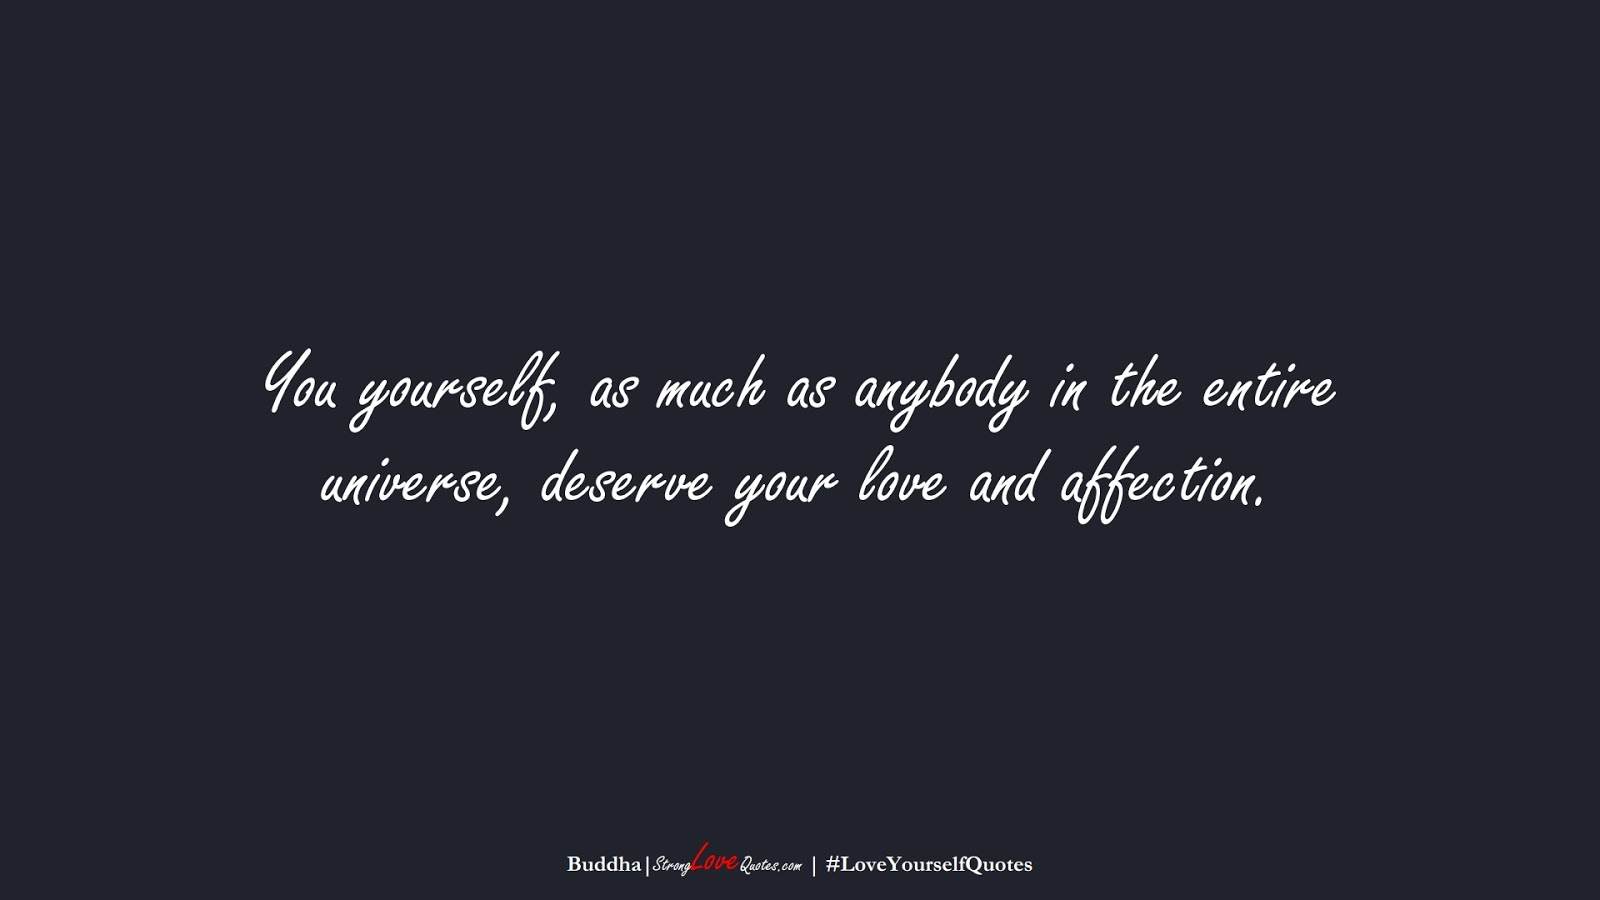 You yourself, as much as anybody in the entire universe, deserve your love and affection. (Buddha);  #LoveYourselfQuotes